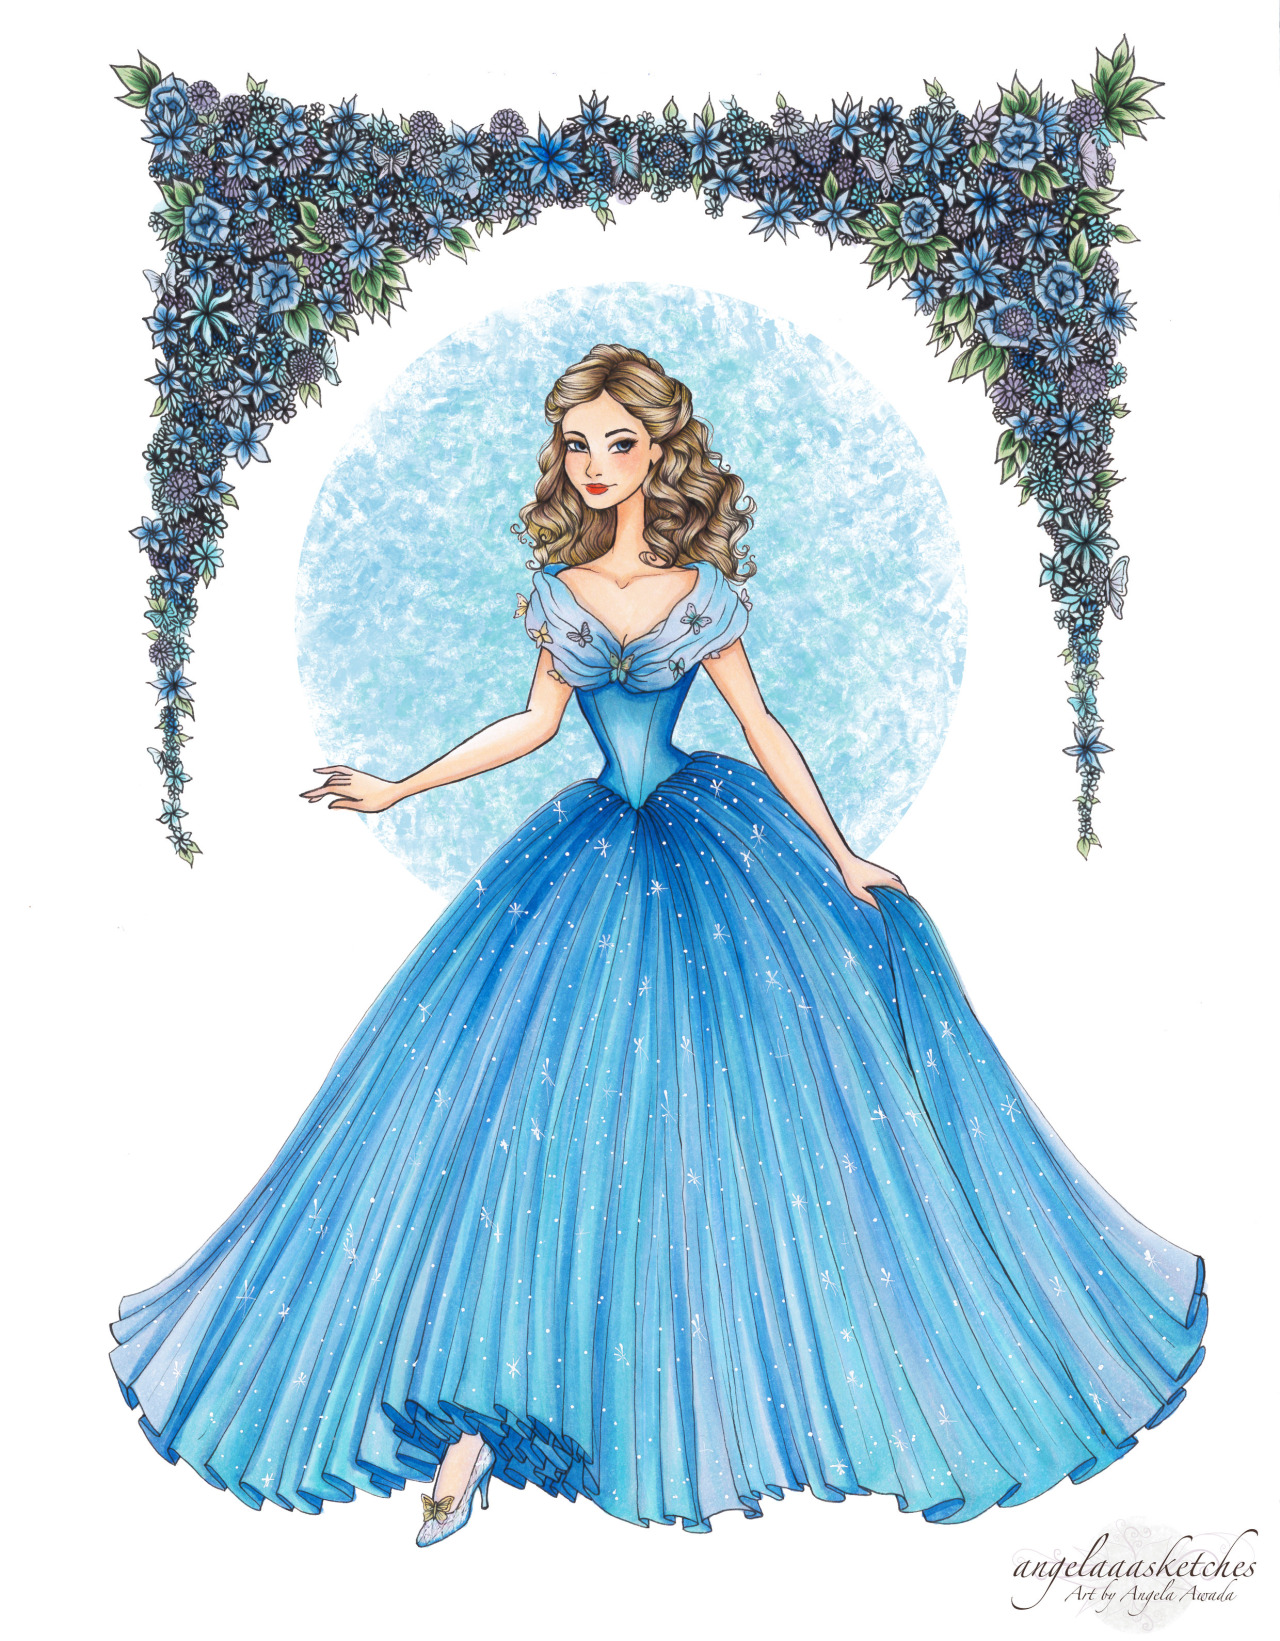 Drawn amd cinderella Markers  colored Cinderella with